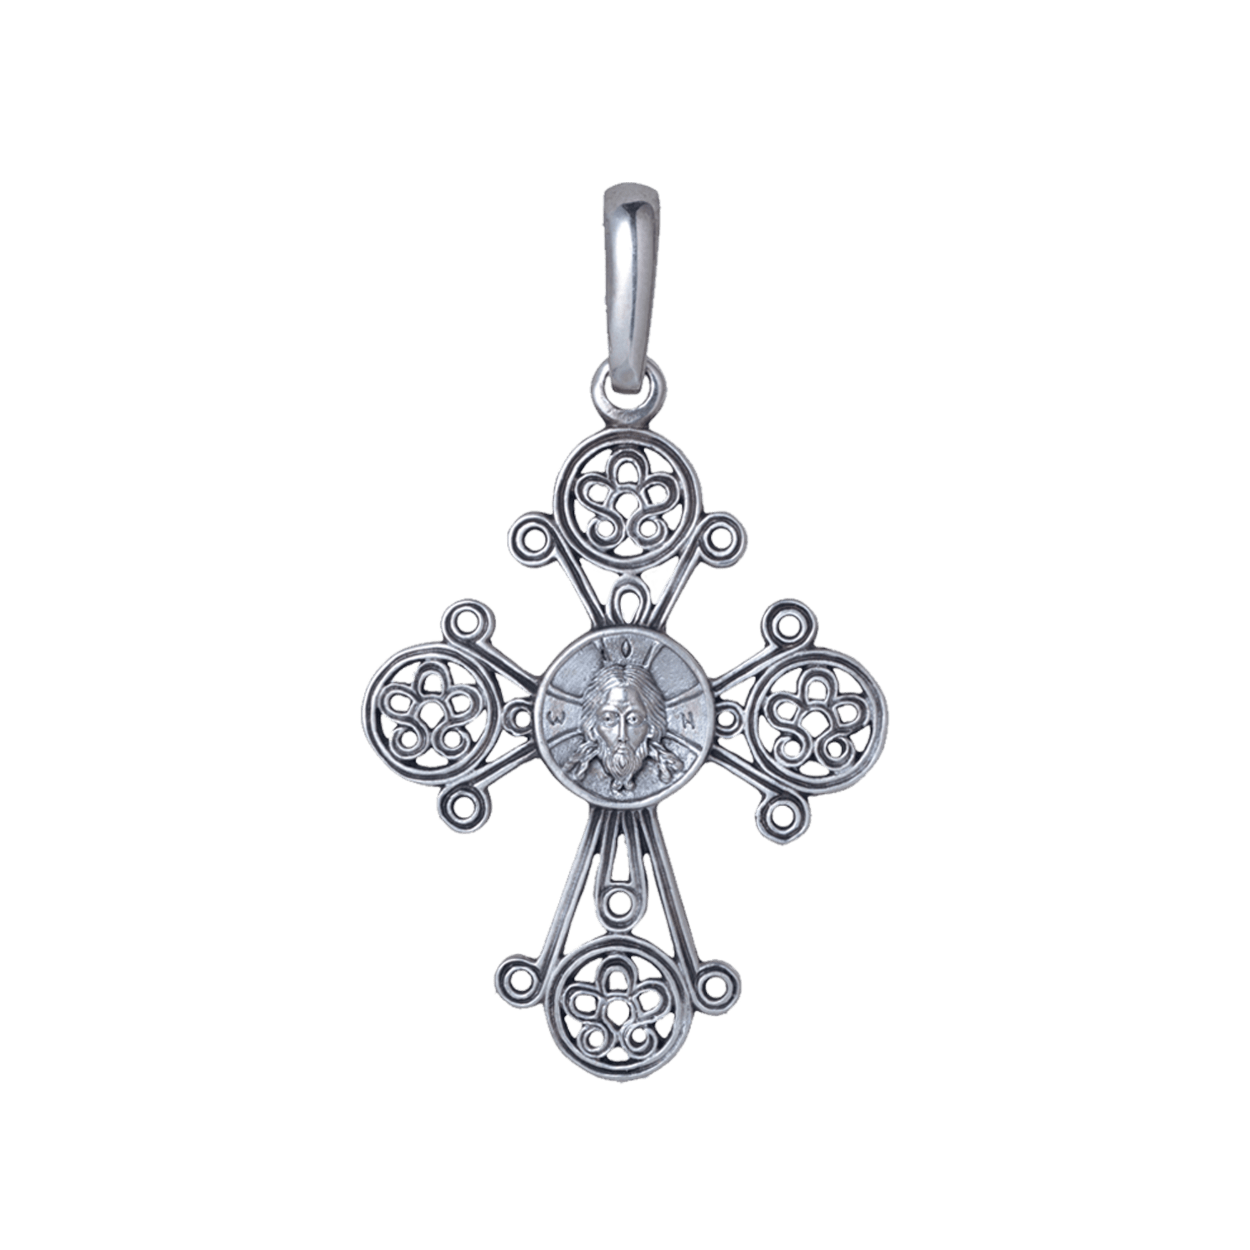 Russian-Orthodox-silver-cross-pendant-IMAGE-OF-THE-SAVIOR-NOT-MADE-BY-HUMAN-HANDS-CHRISMA-Master-Jeweler-Fedorov